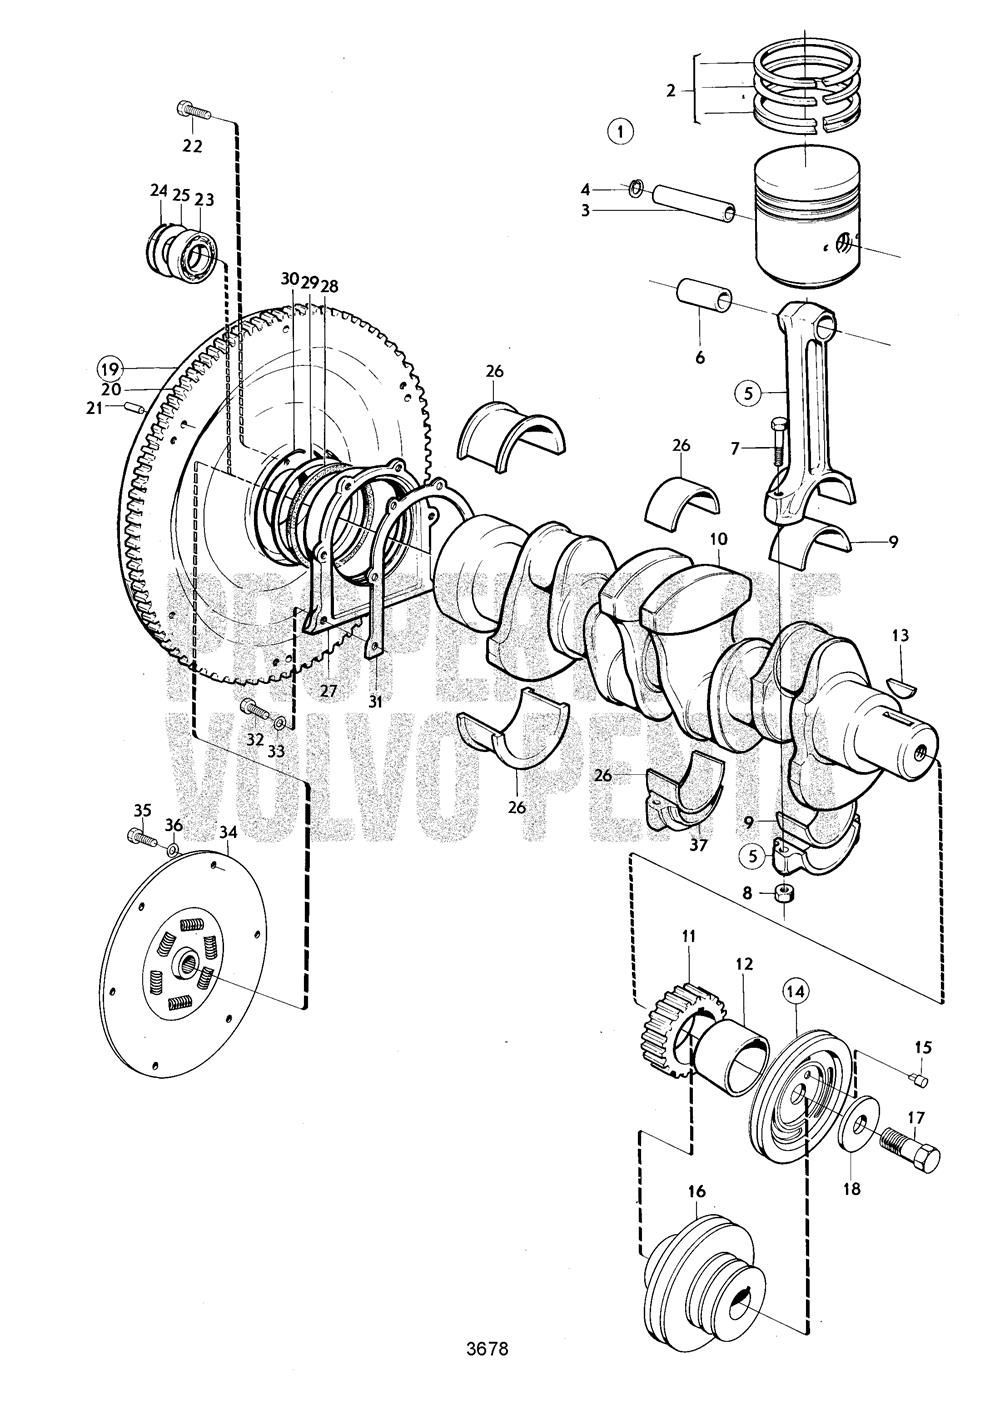 small resolution of watch parts diagram group picture image by tag keywordpictures pt cruiser engine diagram group picture image by tag